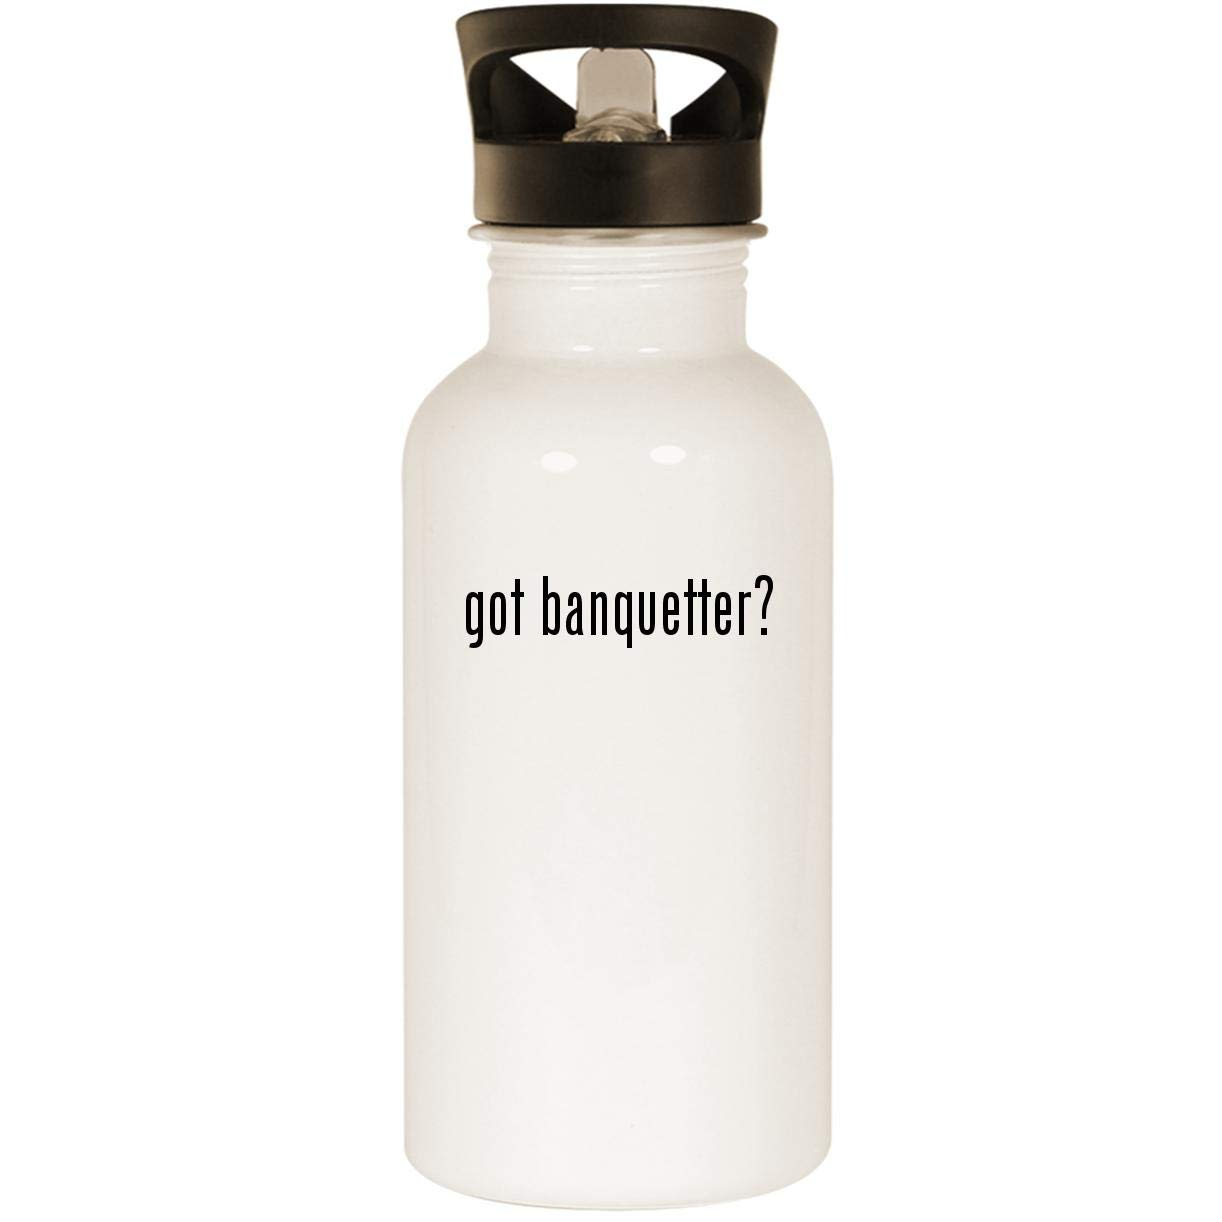 got banquetter? - Stainless Steel 20oz Road Ready Water Bottle, White